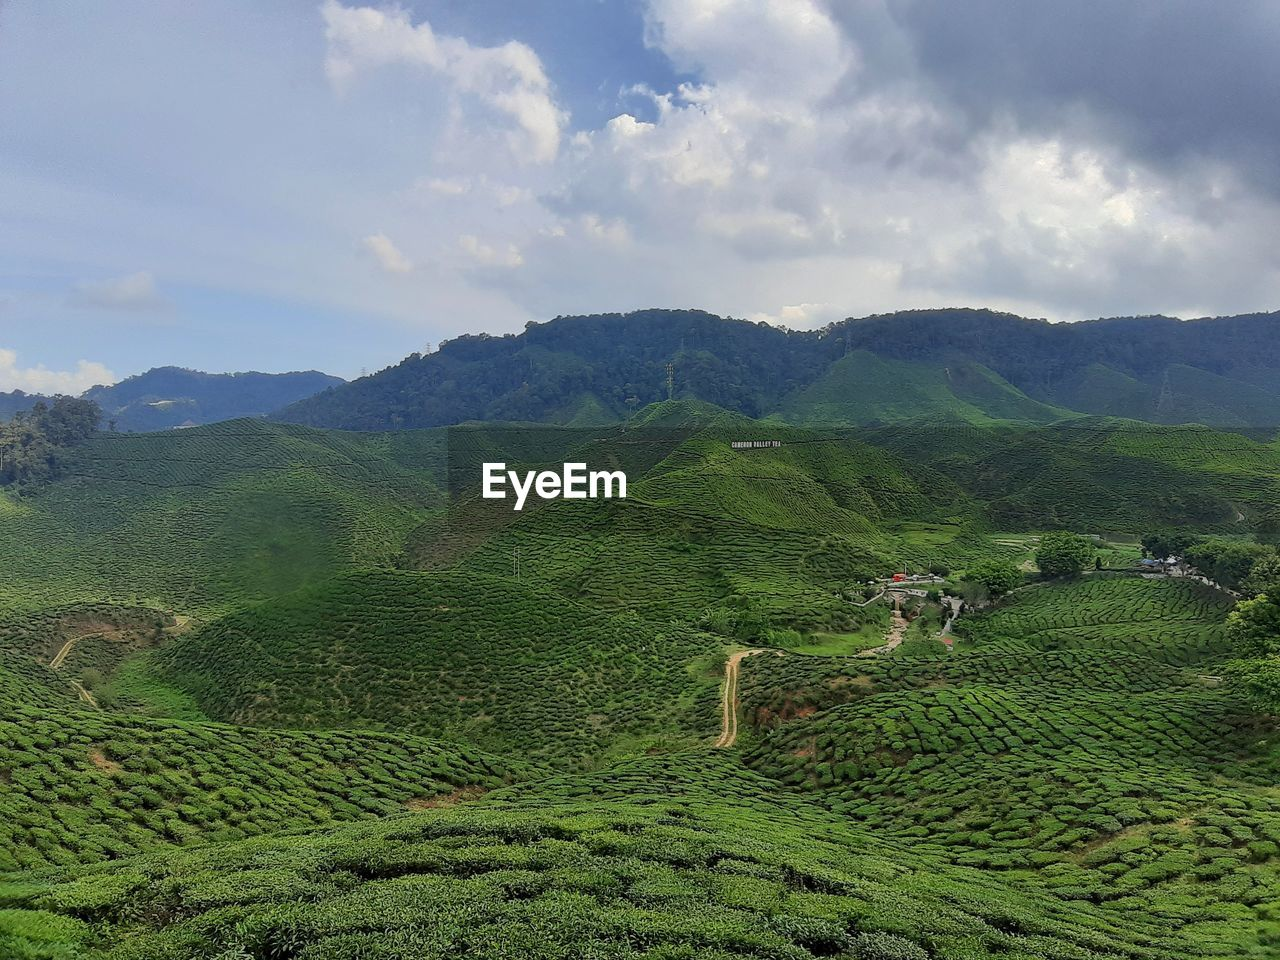 mountain, sky, scenics - nature, beauty in nature, environment, landscape, cloud - sky, plant, agriculture, land, tranquil scene, field, green color, tranquility, growth, rural scene, nature, mountain range, farm, tree, no people, outdoors, tea crop, plantation